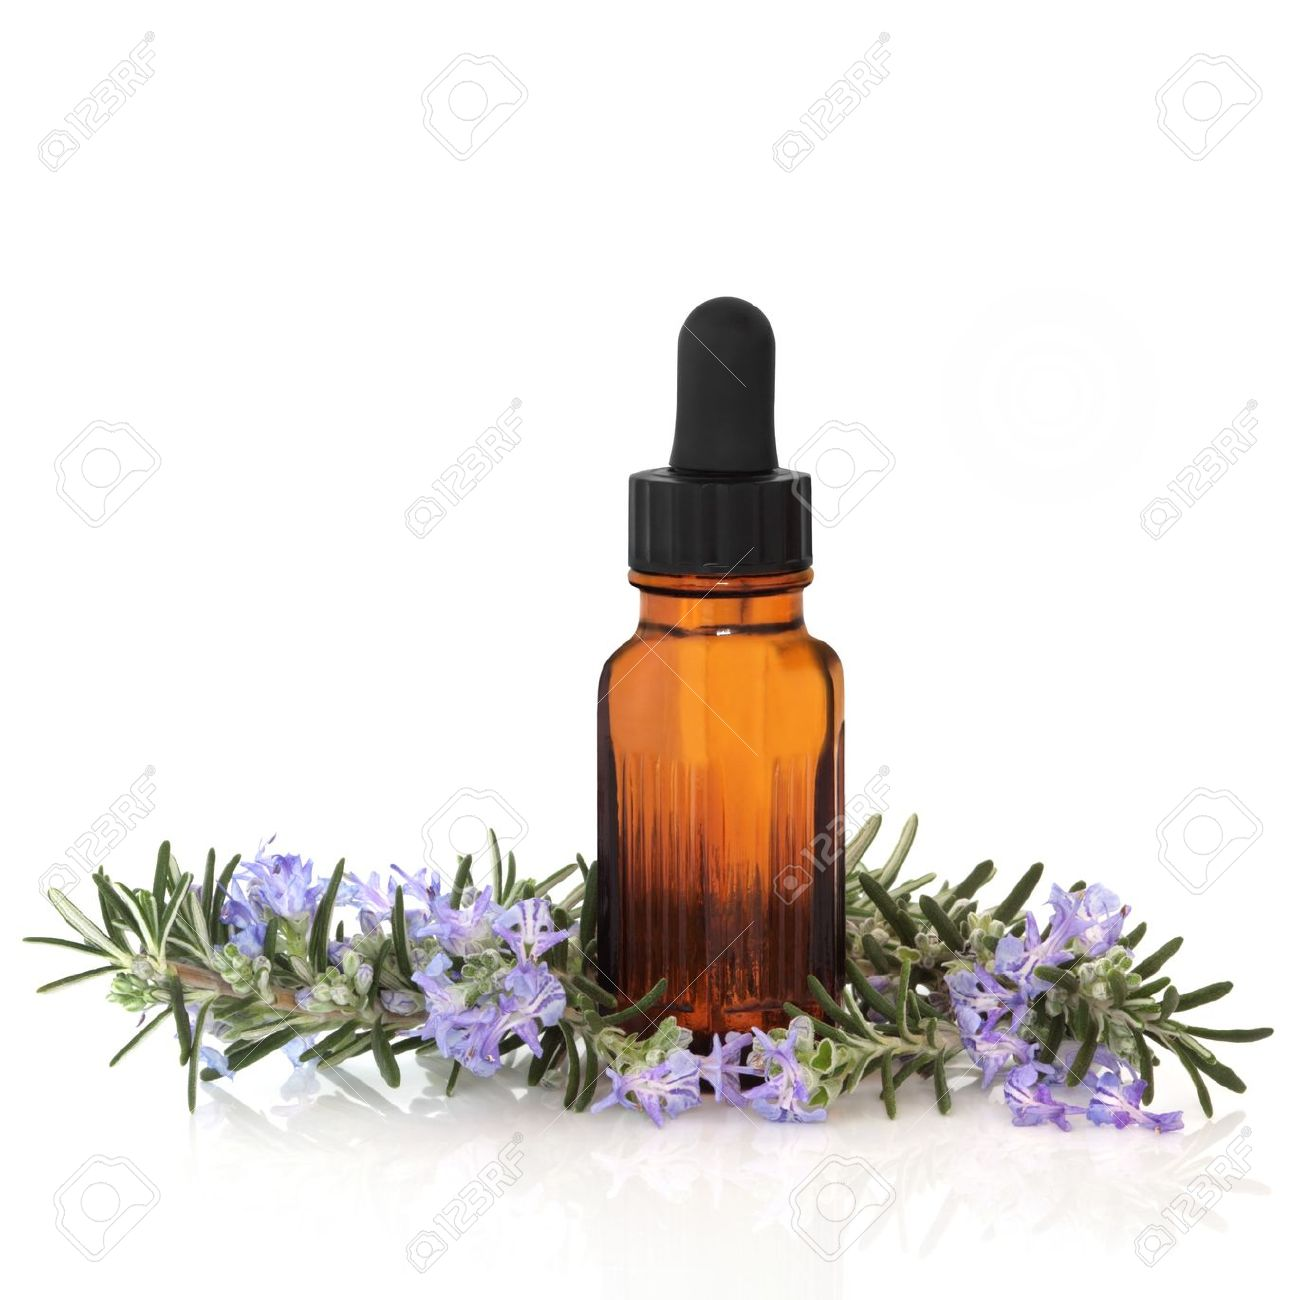 Free essential oil clipart.